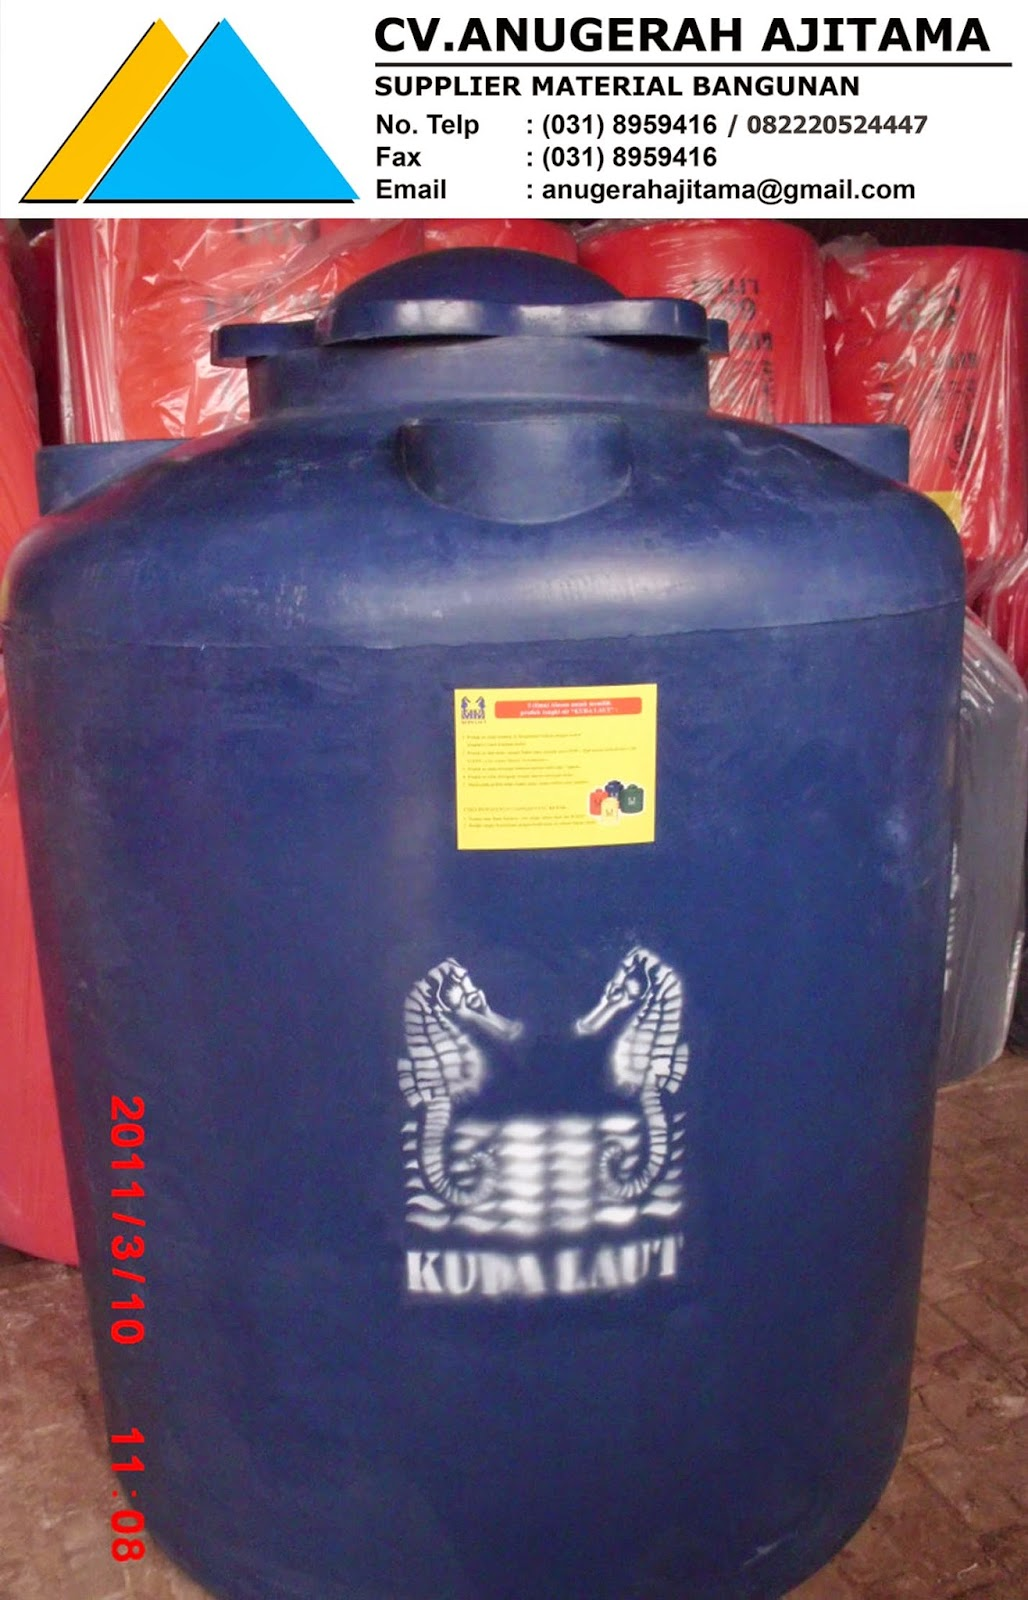 JUAL TANDON AIR KUDA LAUT